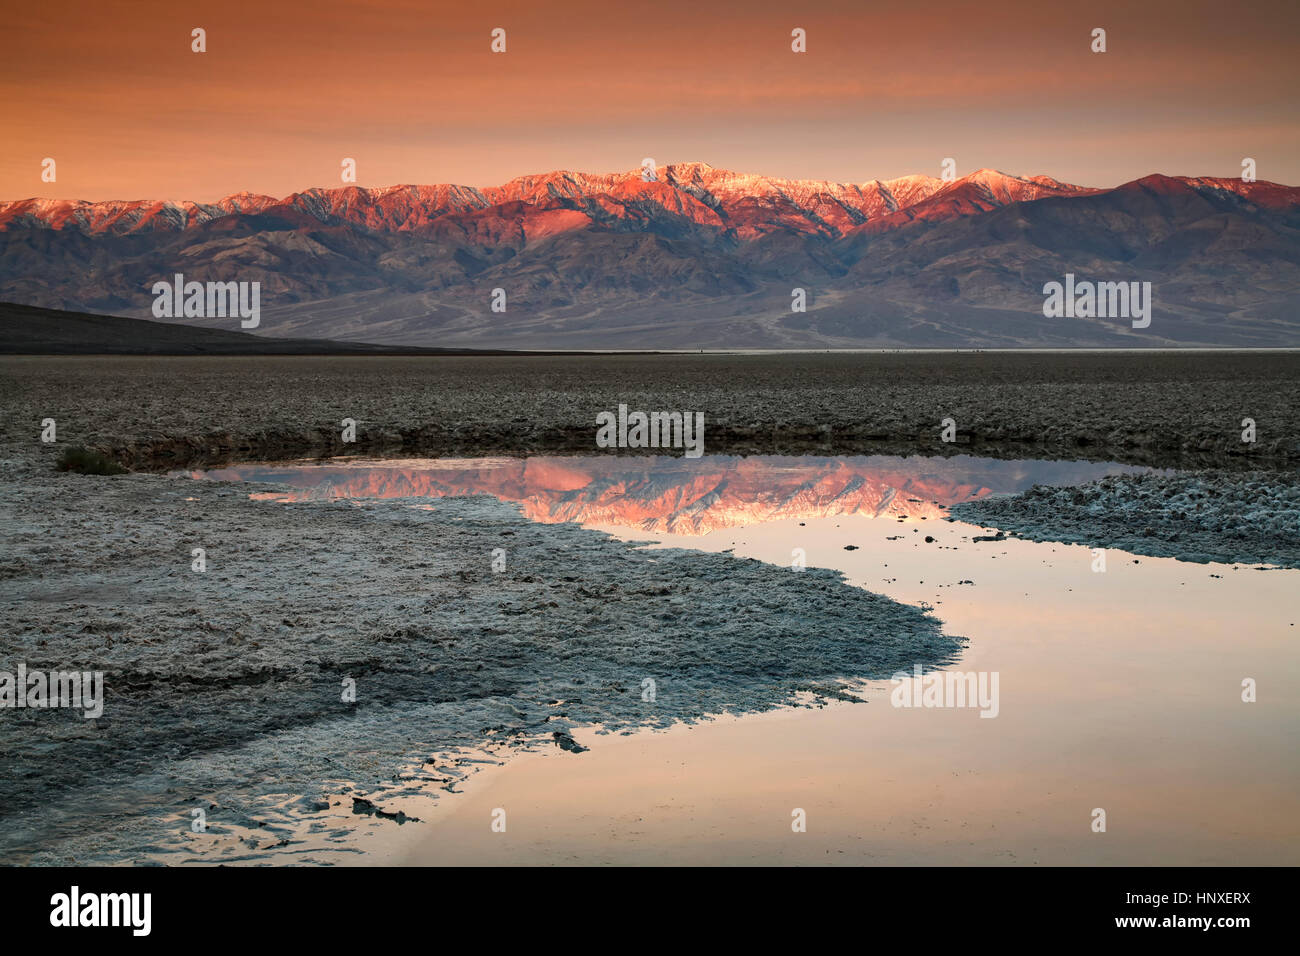 Telescope Peak (11,049 ft.) and Panamint Range reflected on pond, Badwater Basin, Death Valley National Park, California - Stock Image